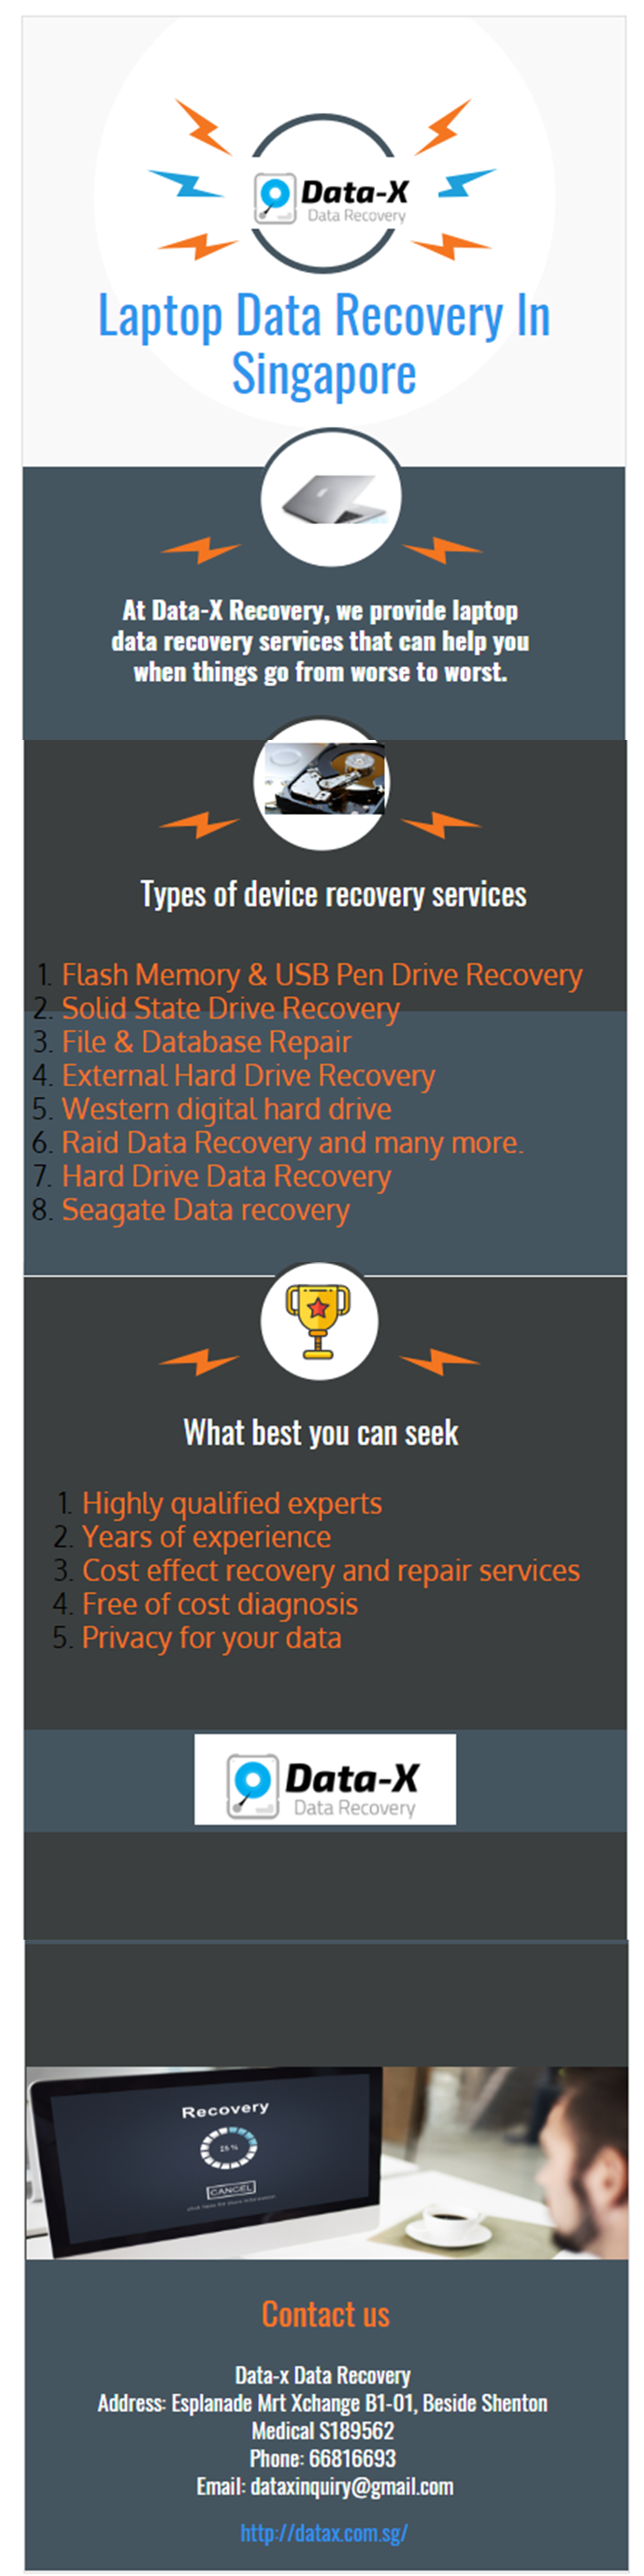 At DataX Recovery, we provide laptop data recovery